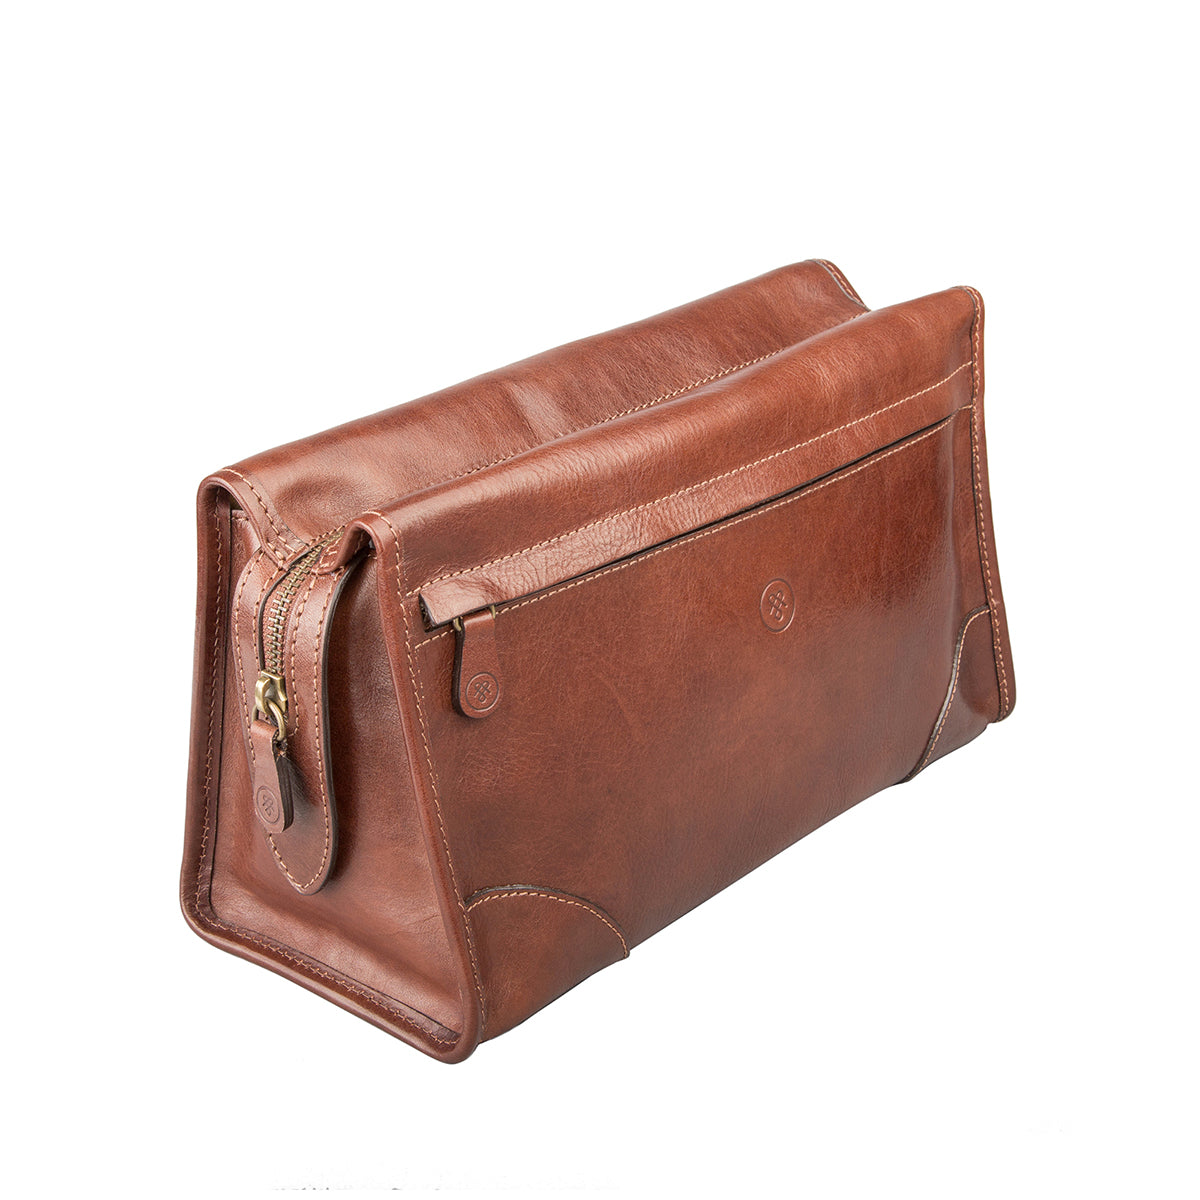 Image 2 of the 'Tanta' Chestnut Veg-Tanned Leather Wash Bag